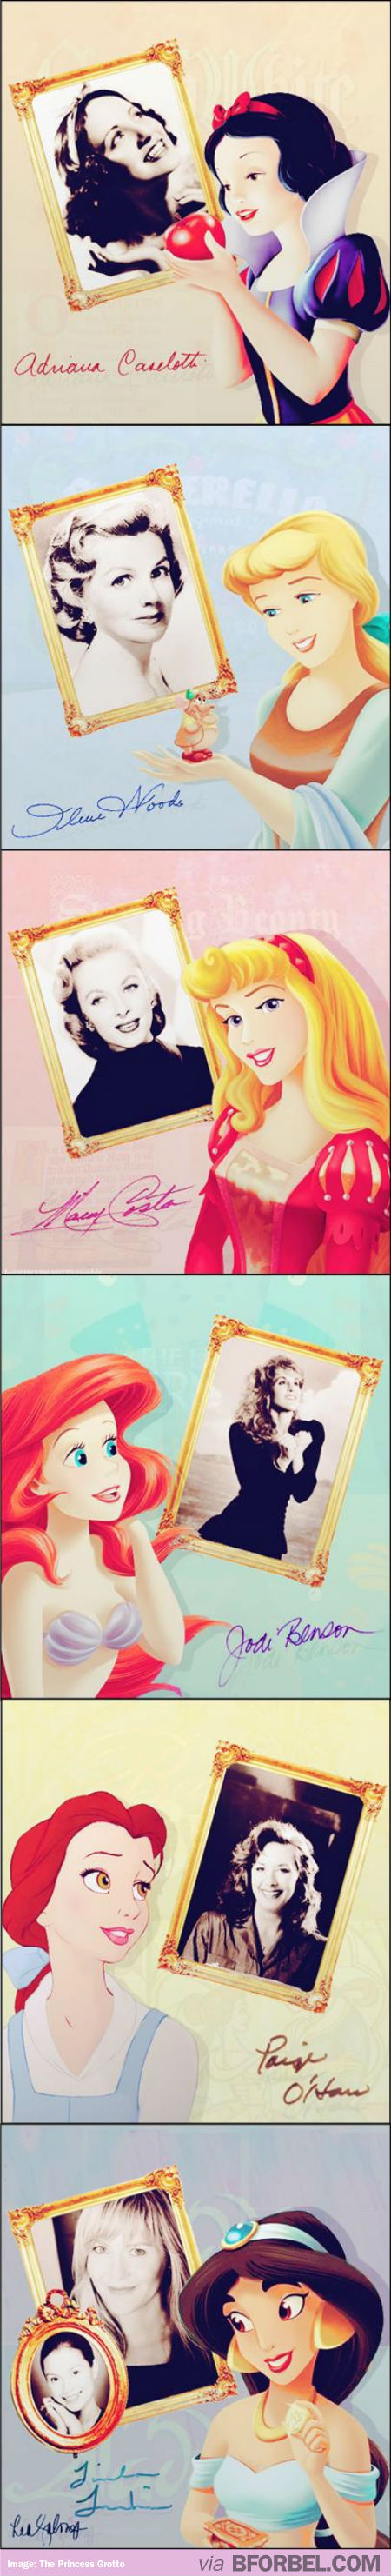 Disney Princesses And Their Voice Actors…